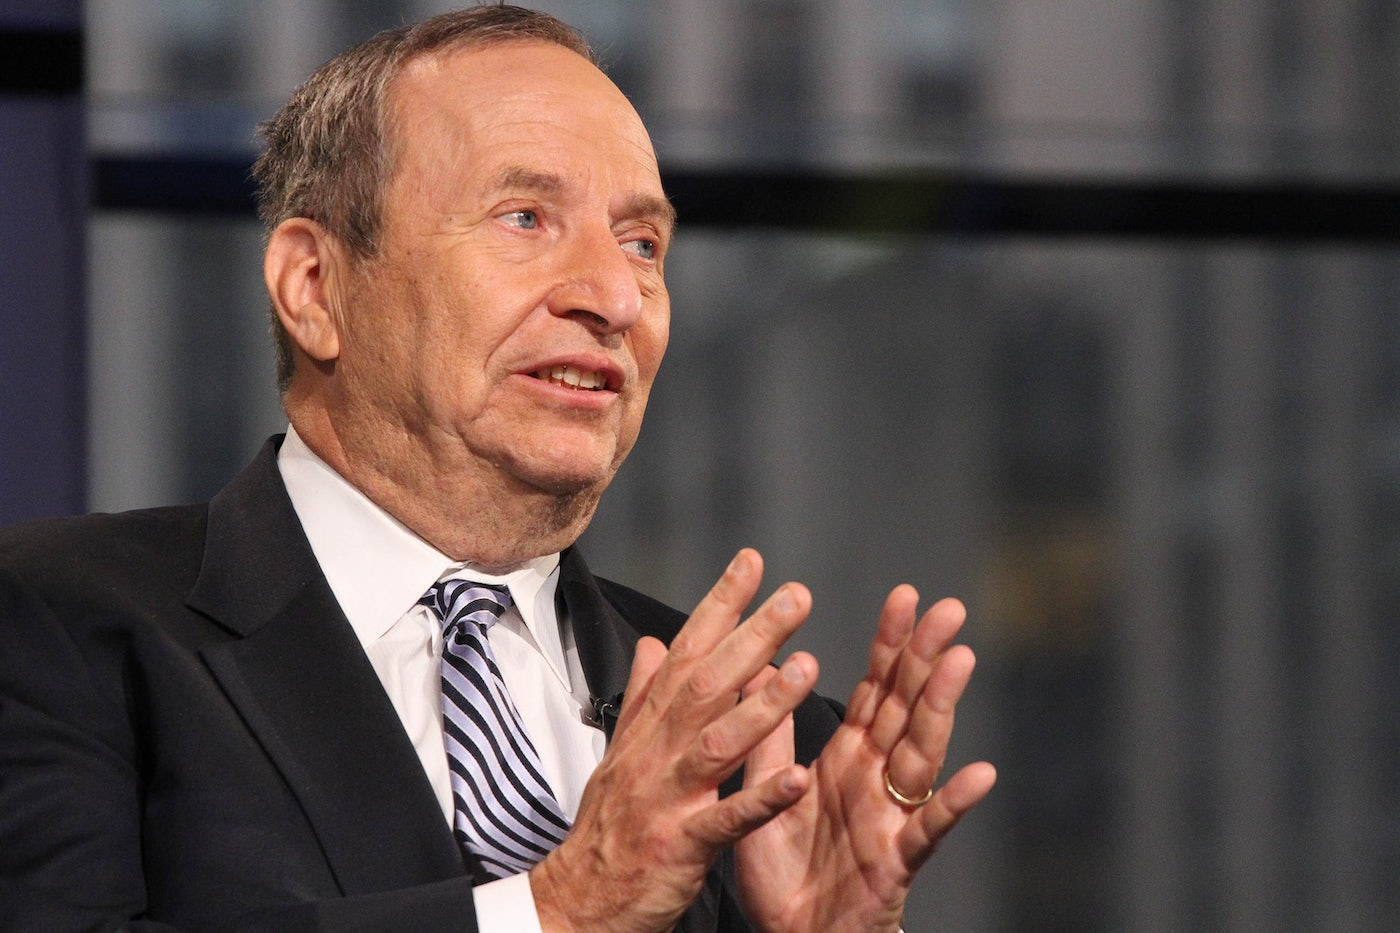 Former Treasury Secretary Larry Summers gesticulated while talking to Fox News.